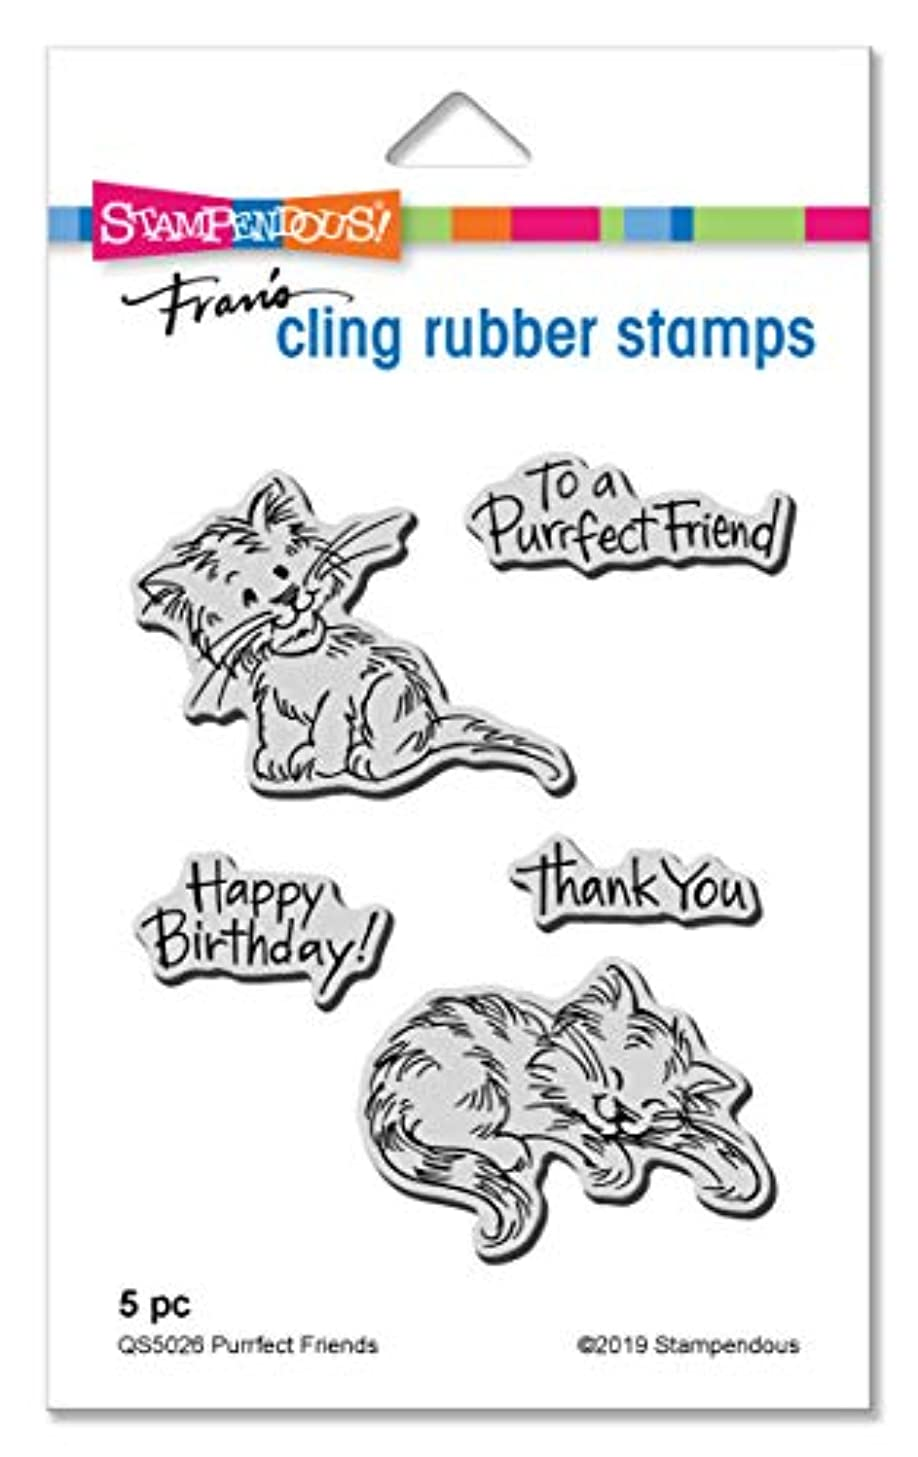 Stampendous QS5026 Purrfect Friends Cling Stamp Set